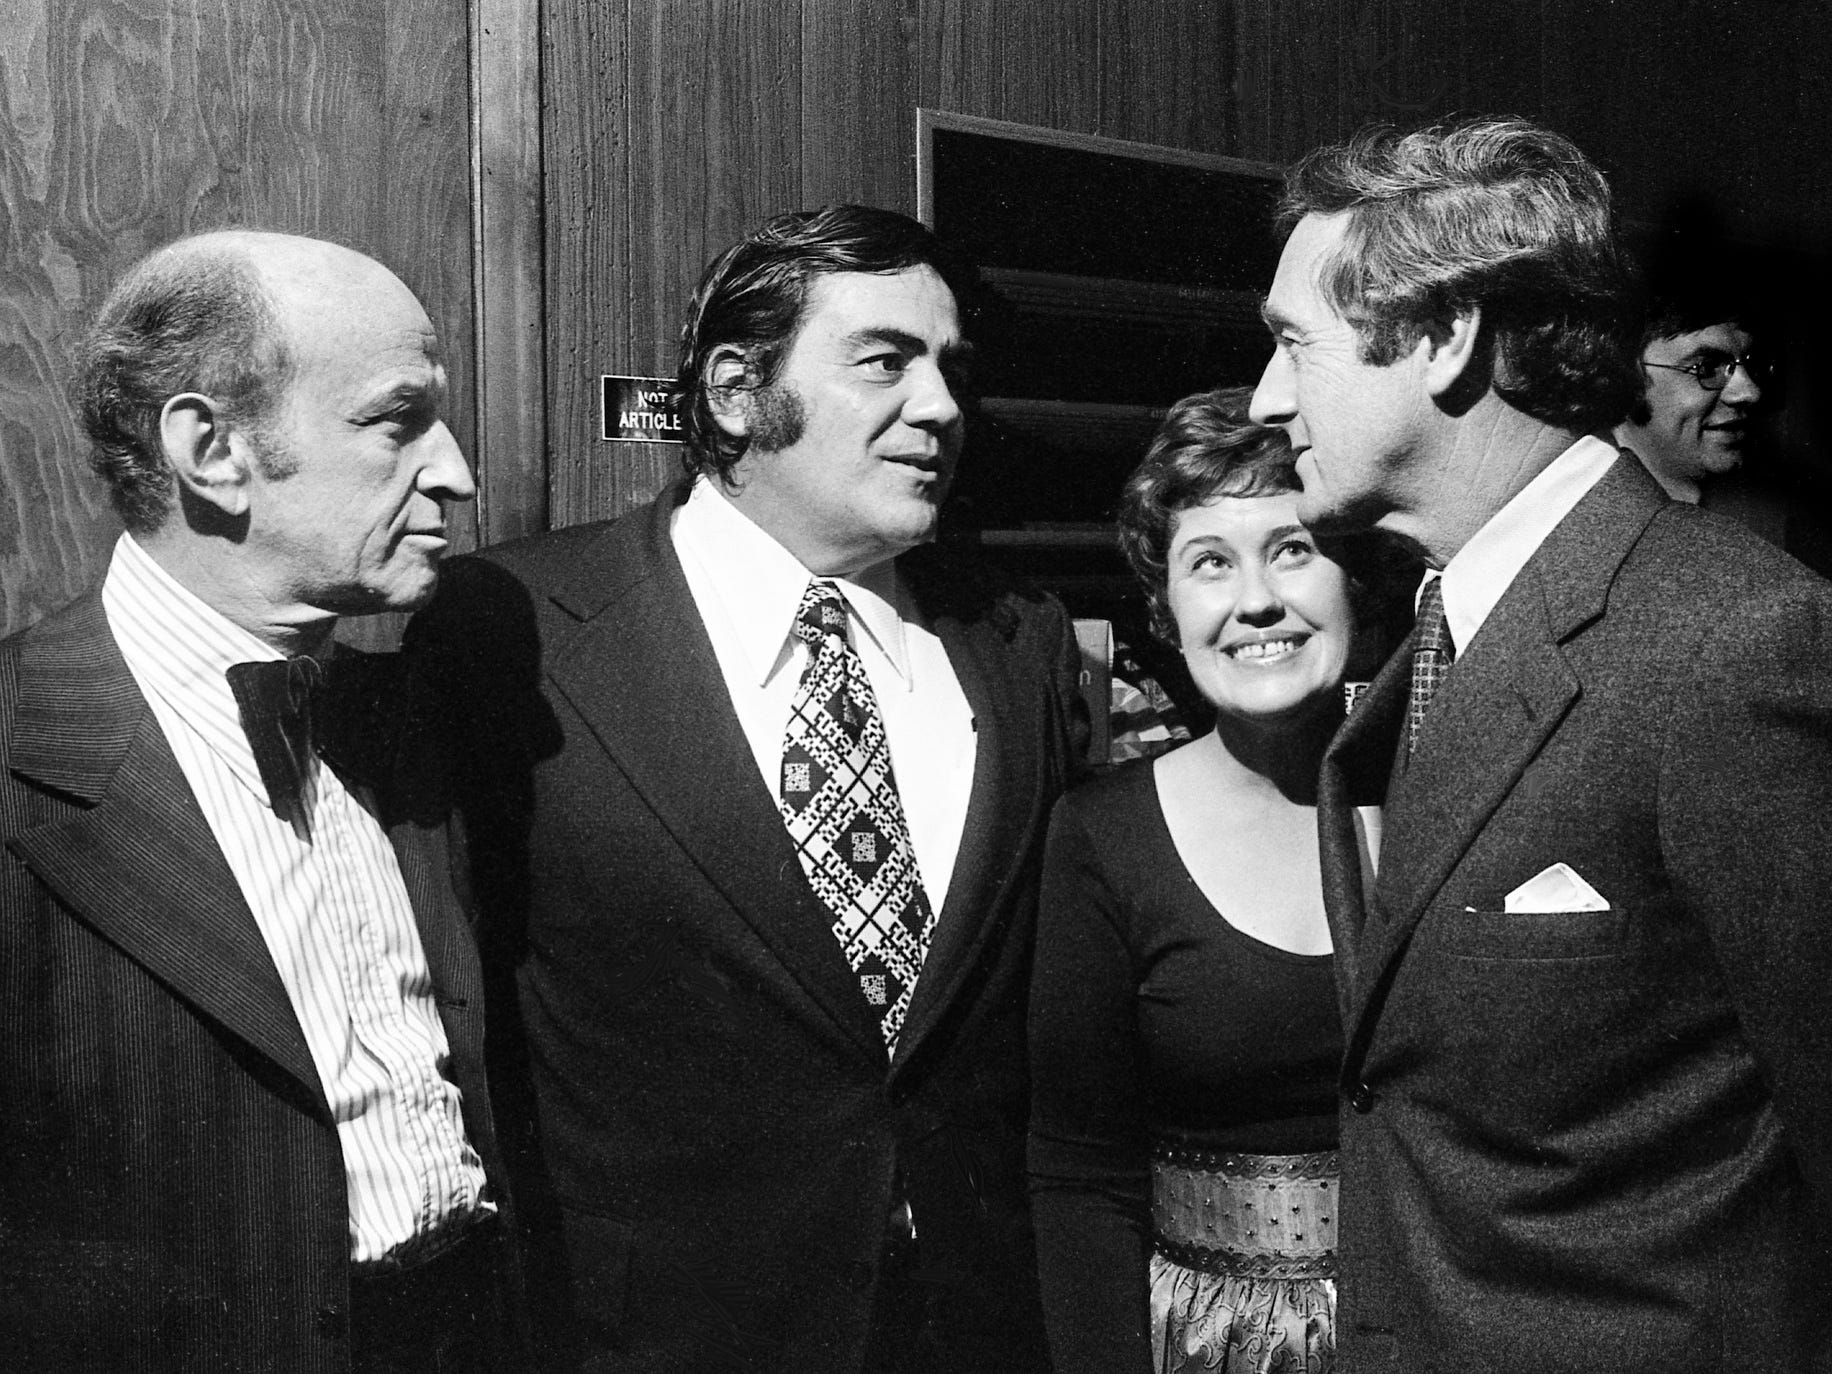 John Seigenthaler, right, master of ceremonies at the fifth annual Nashville Book and Authors Dinner, greets the three authors who appeared at the event Oct. 29, 1973: Garson Kanin, left, Jimmy Breslin and Erma Bombeck. The event at the downtown Sheraton was sponsored by the Nashville Booksellers Association and The Tennessean.